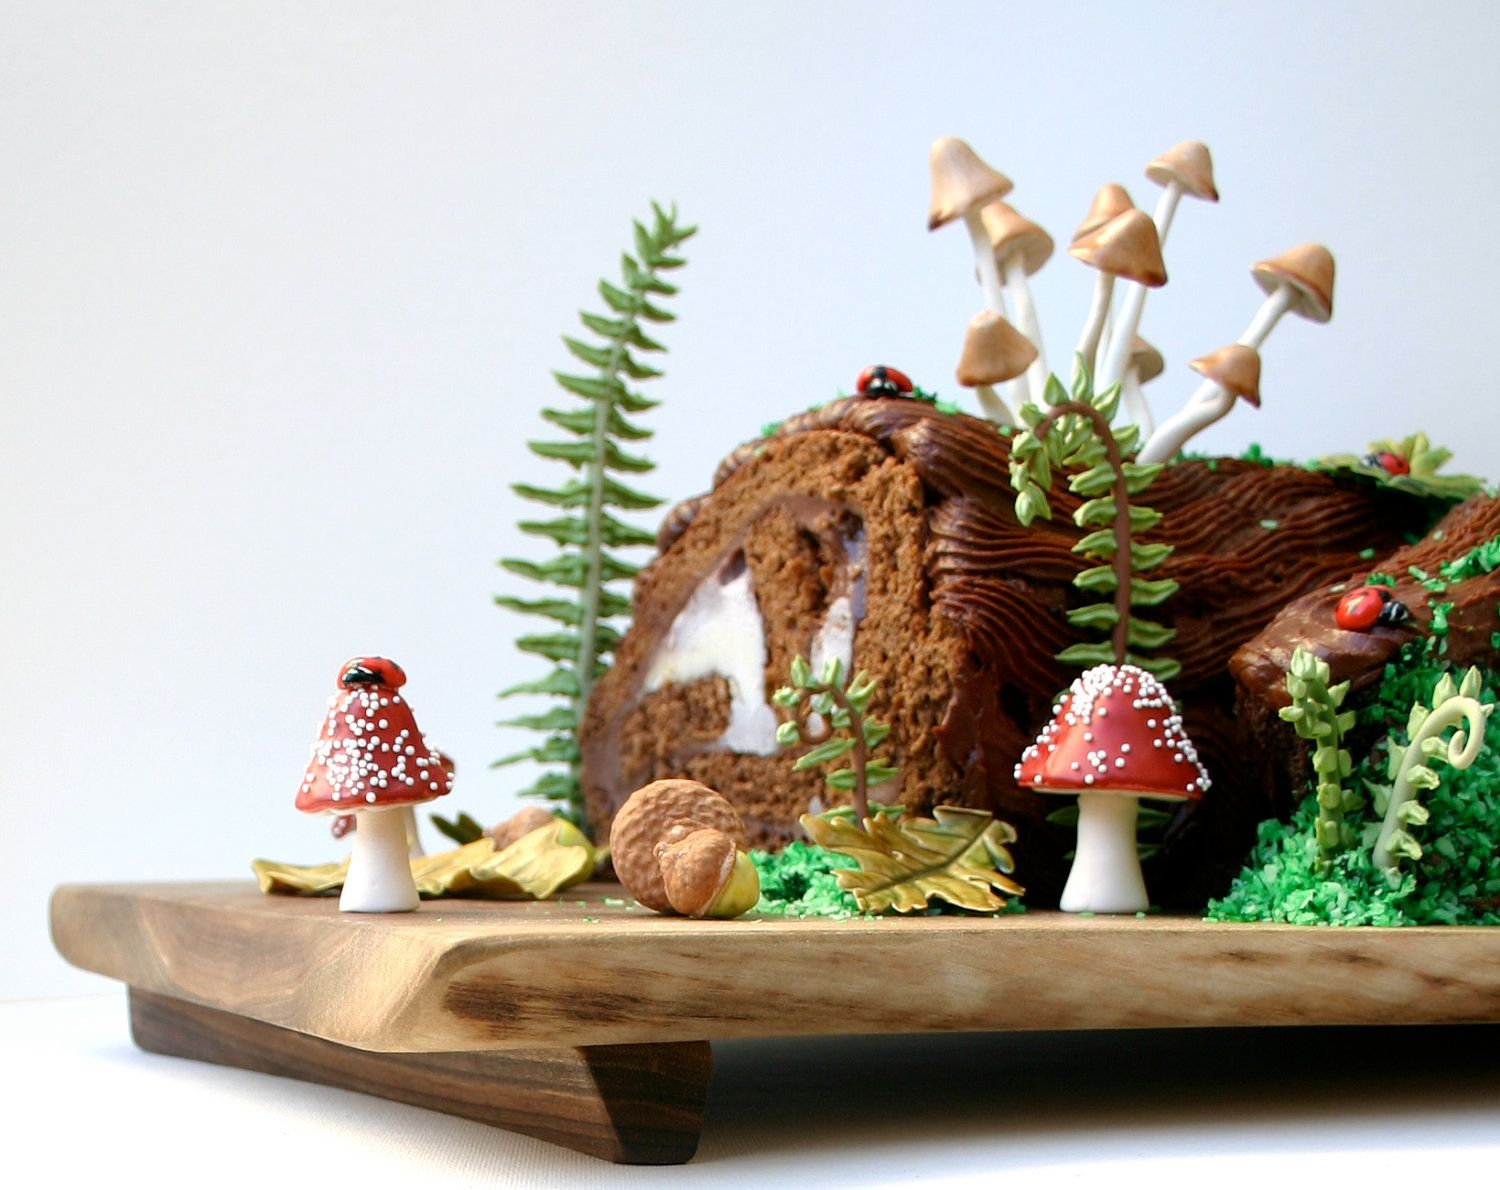 How to make a christmas yule log decoration - Woodland Cake Decorating Set Including Sugar Lady Bugs Ferns And Mushrooms Chocolate Filled Toadstools And Chocolate Cocoa Bean Filled Acorns